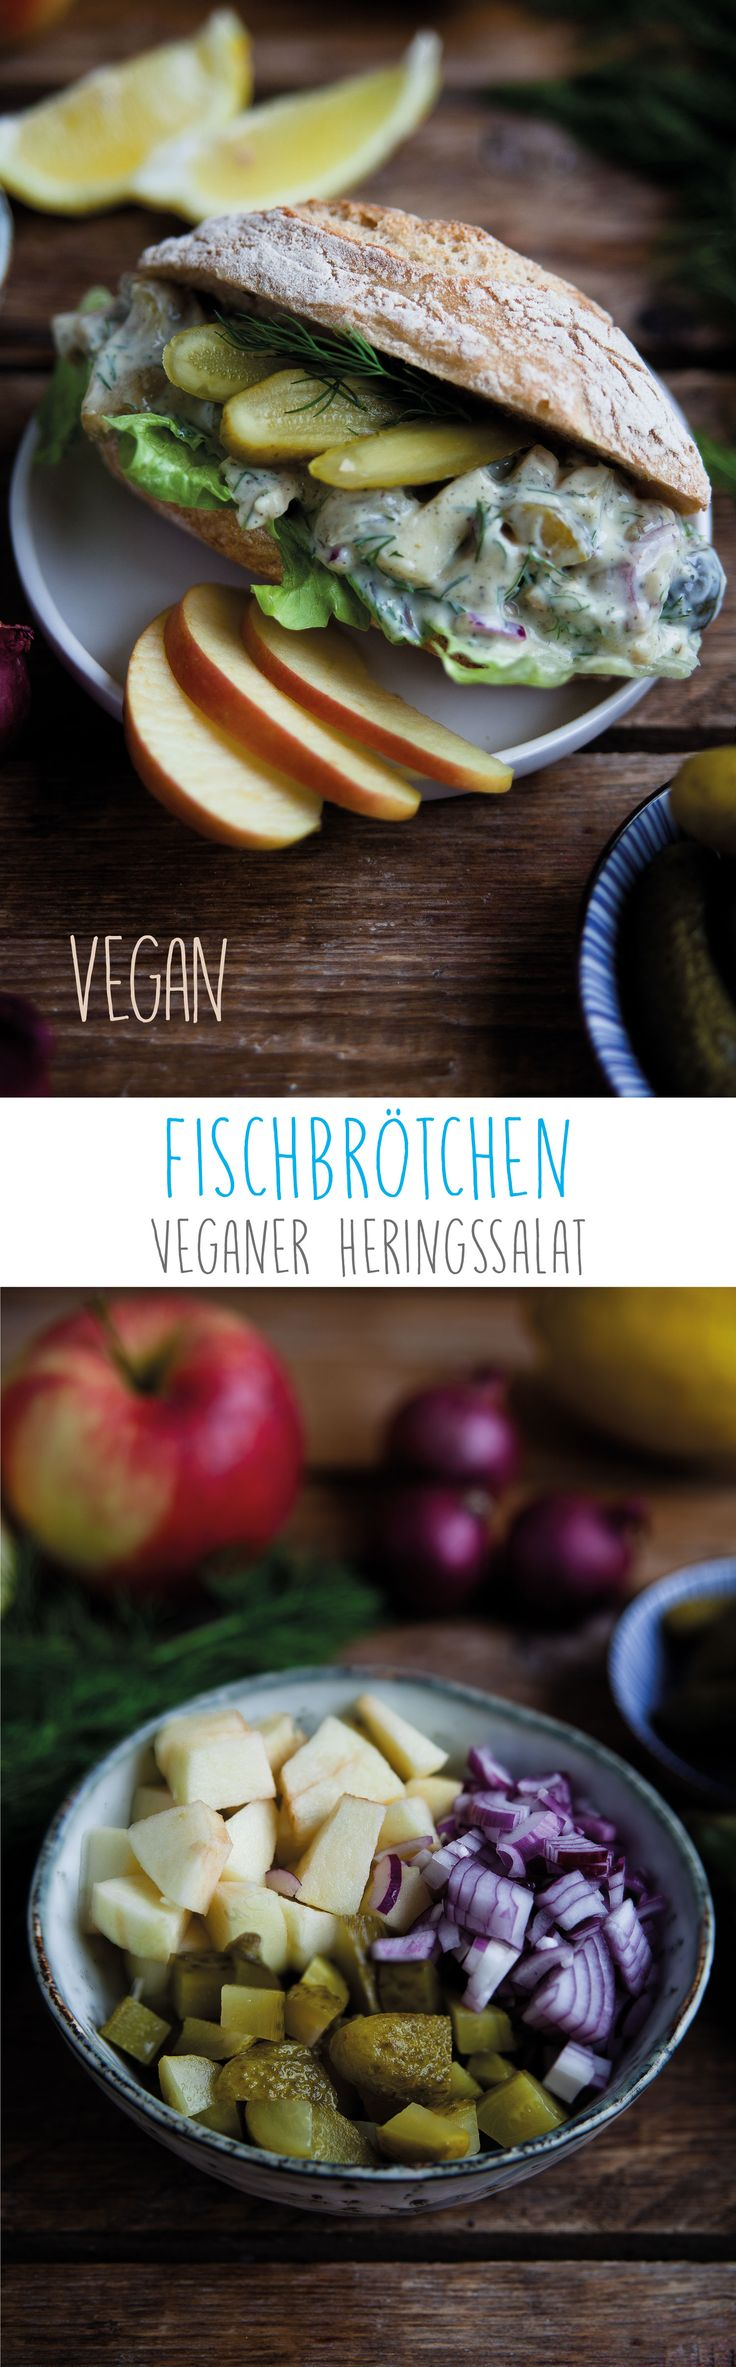 Vegane Fischbrötchen Entdeckt von Vegalife Rocks: www.vegaliferocks.de ✨ I Fleischlos glücklich, fit & Gesund✨ I Follow me for more vegan inspiration @vegaliferocks